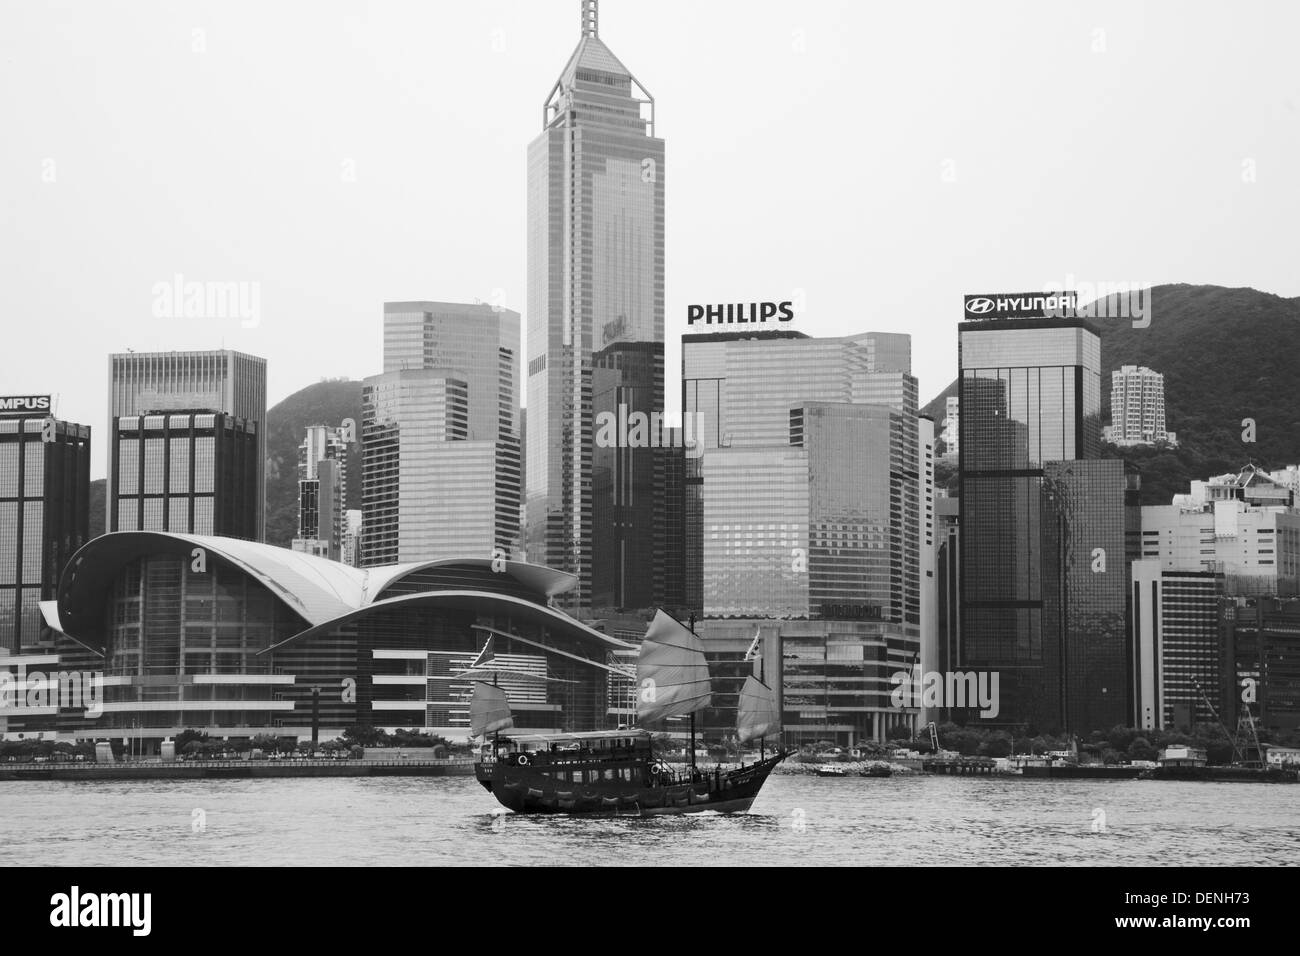 Junk style boat in the harbour, Hong Kong - Stock Image